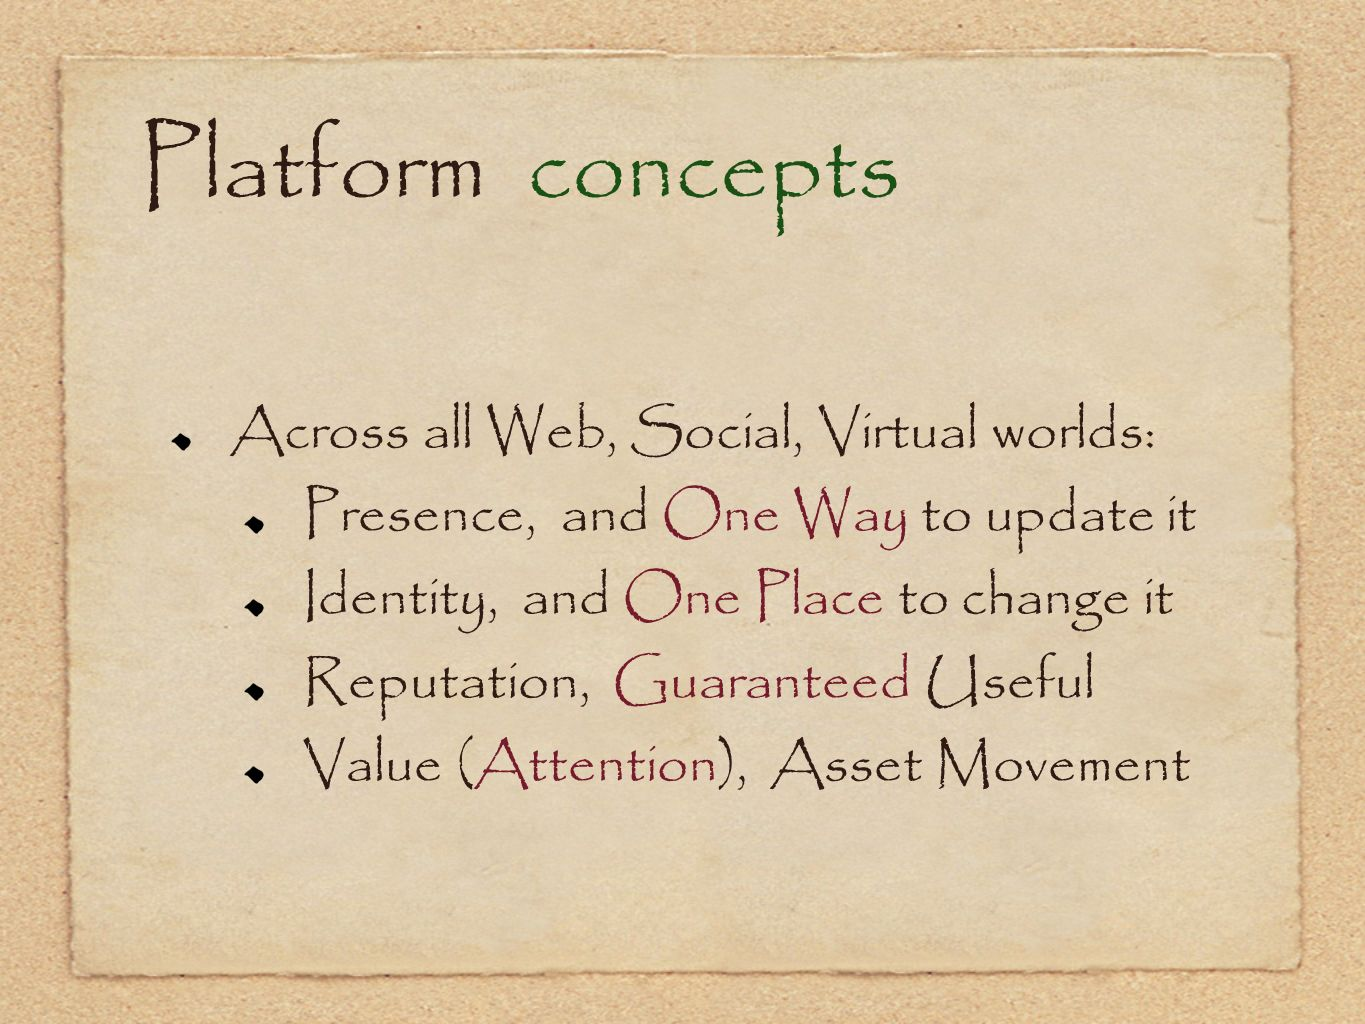 Platform concepts Across all Web, Social, Virtual worlds: Presence, and One Way to update it Identity, and One Place to change it Reputation, Guarante